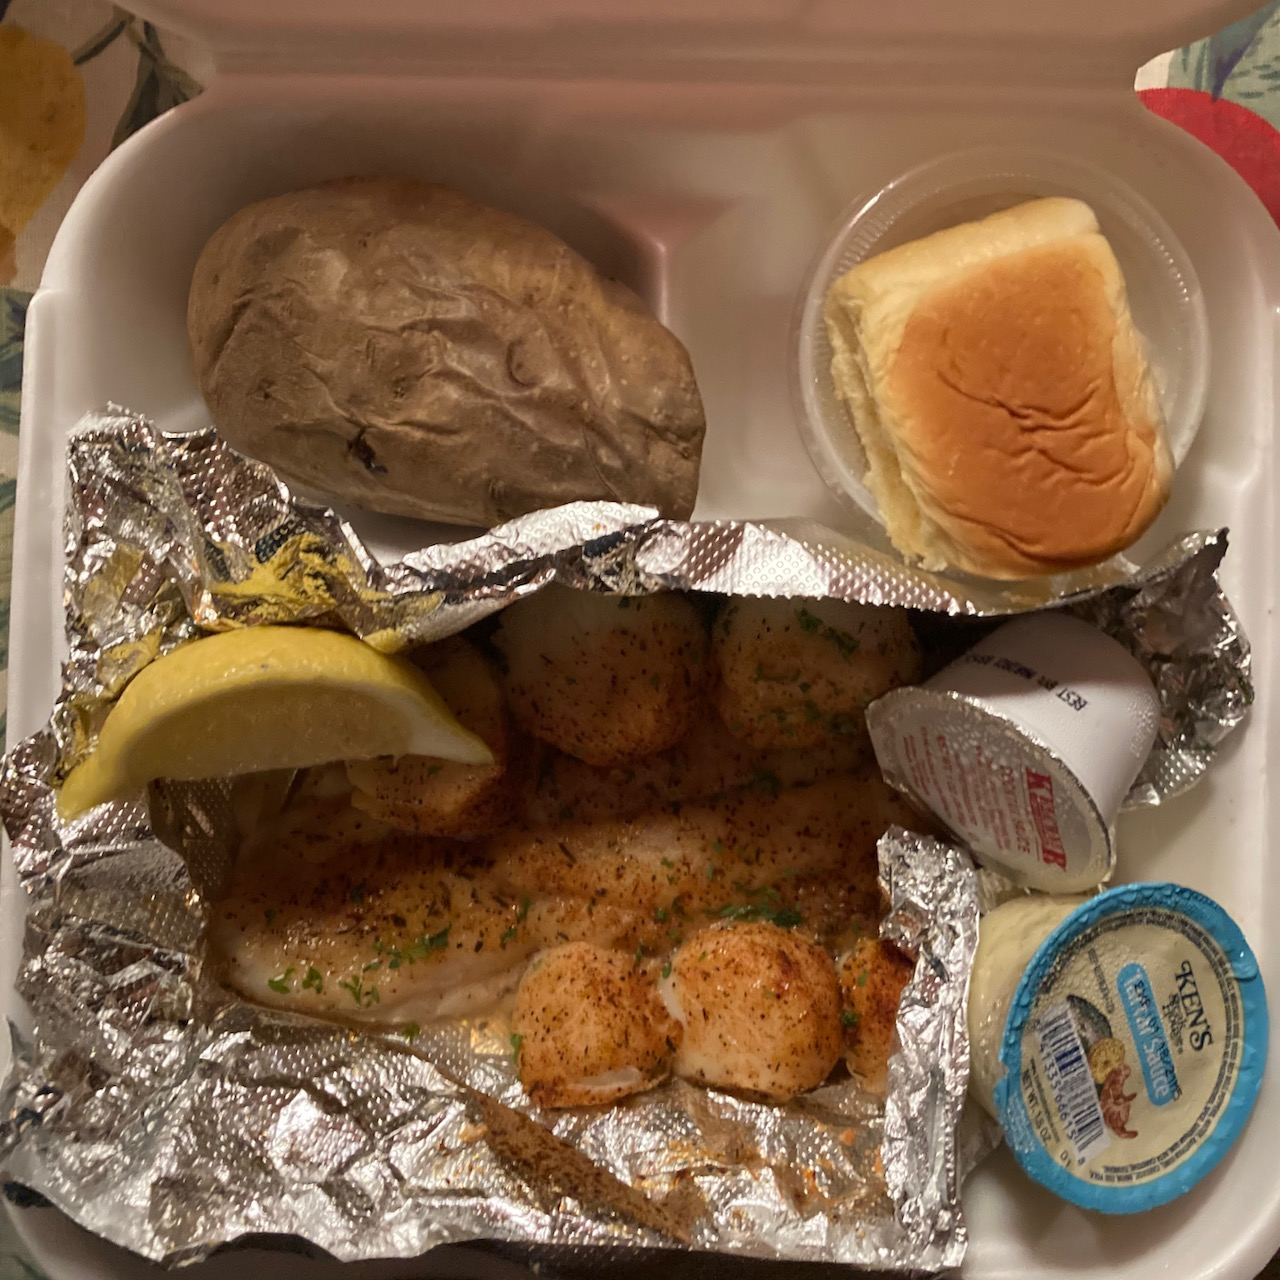 Styrofoam container with roll, baked potato, grouper, scallops, lemon, and sauces.